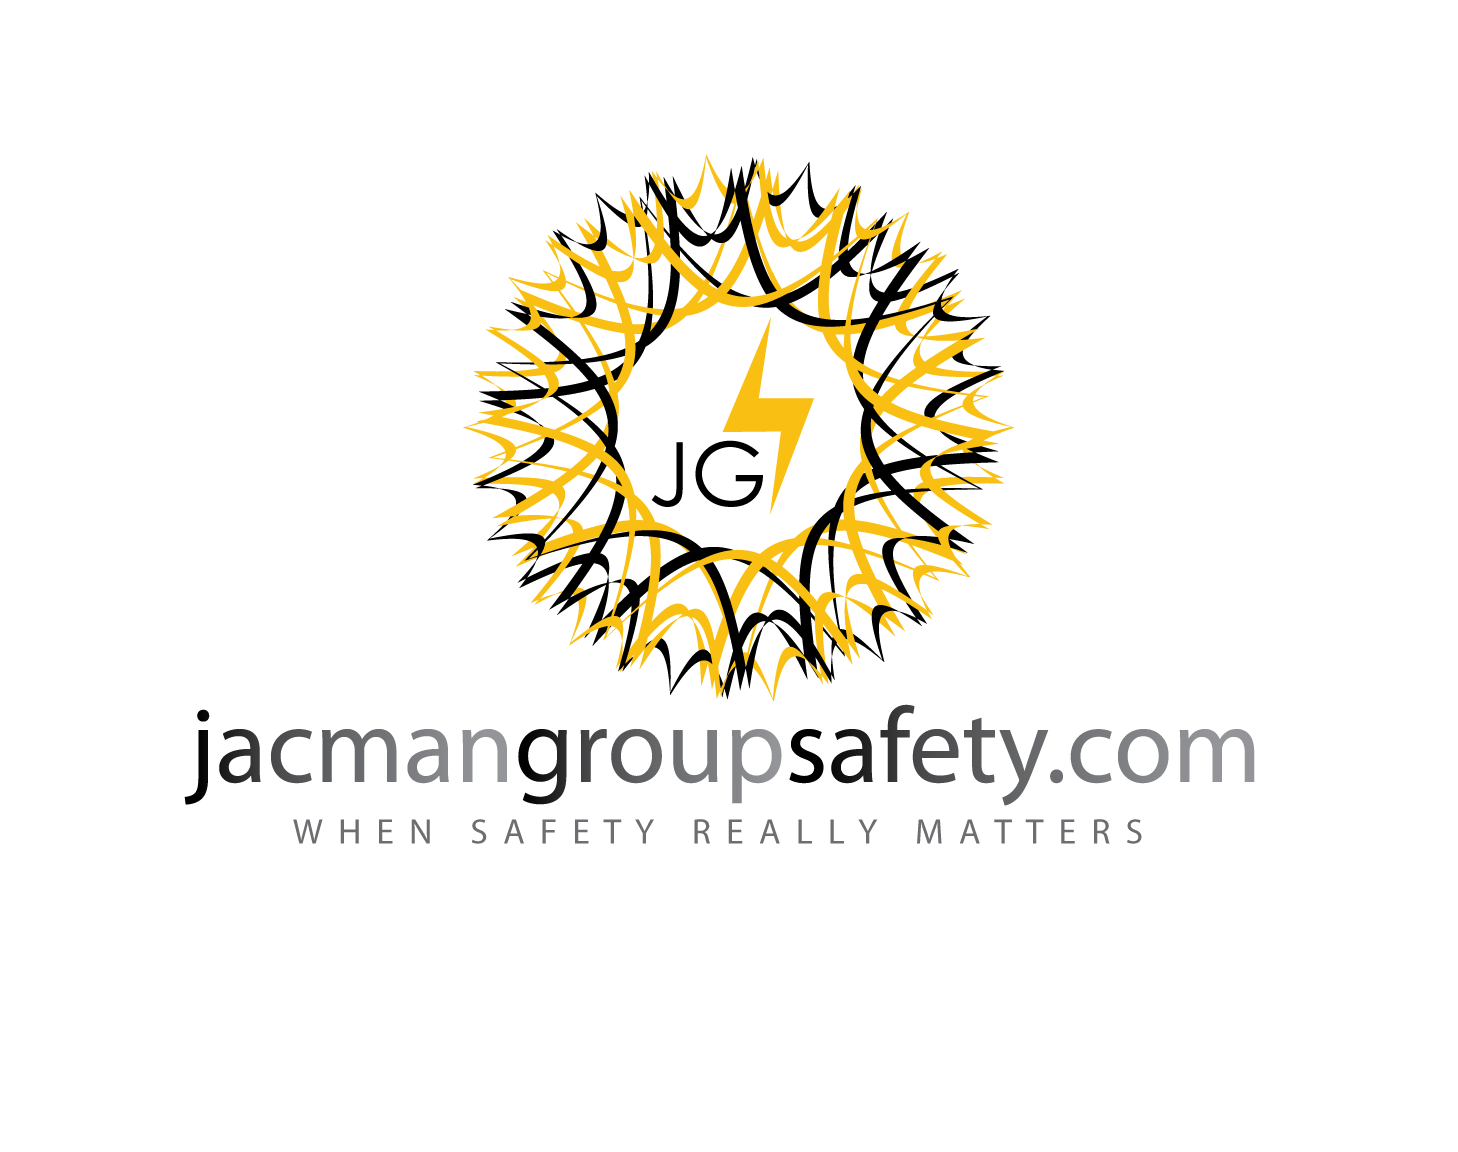 Logo Design by Roy Ferre - Entry No. 155 in the Logo Design Contest The Jacman Group Logo Design.